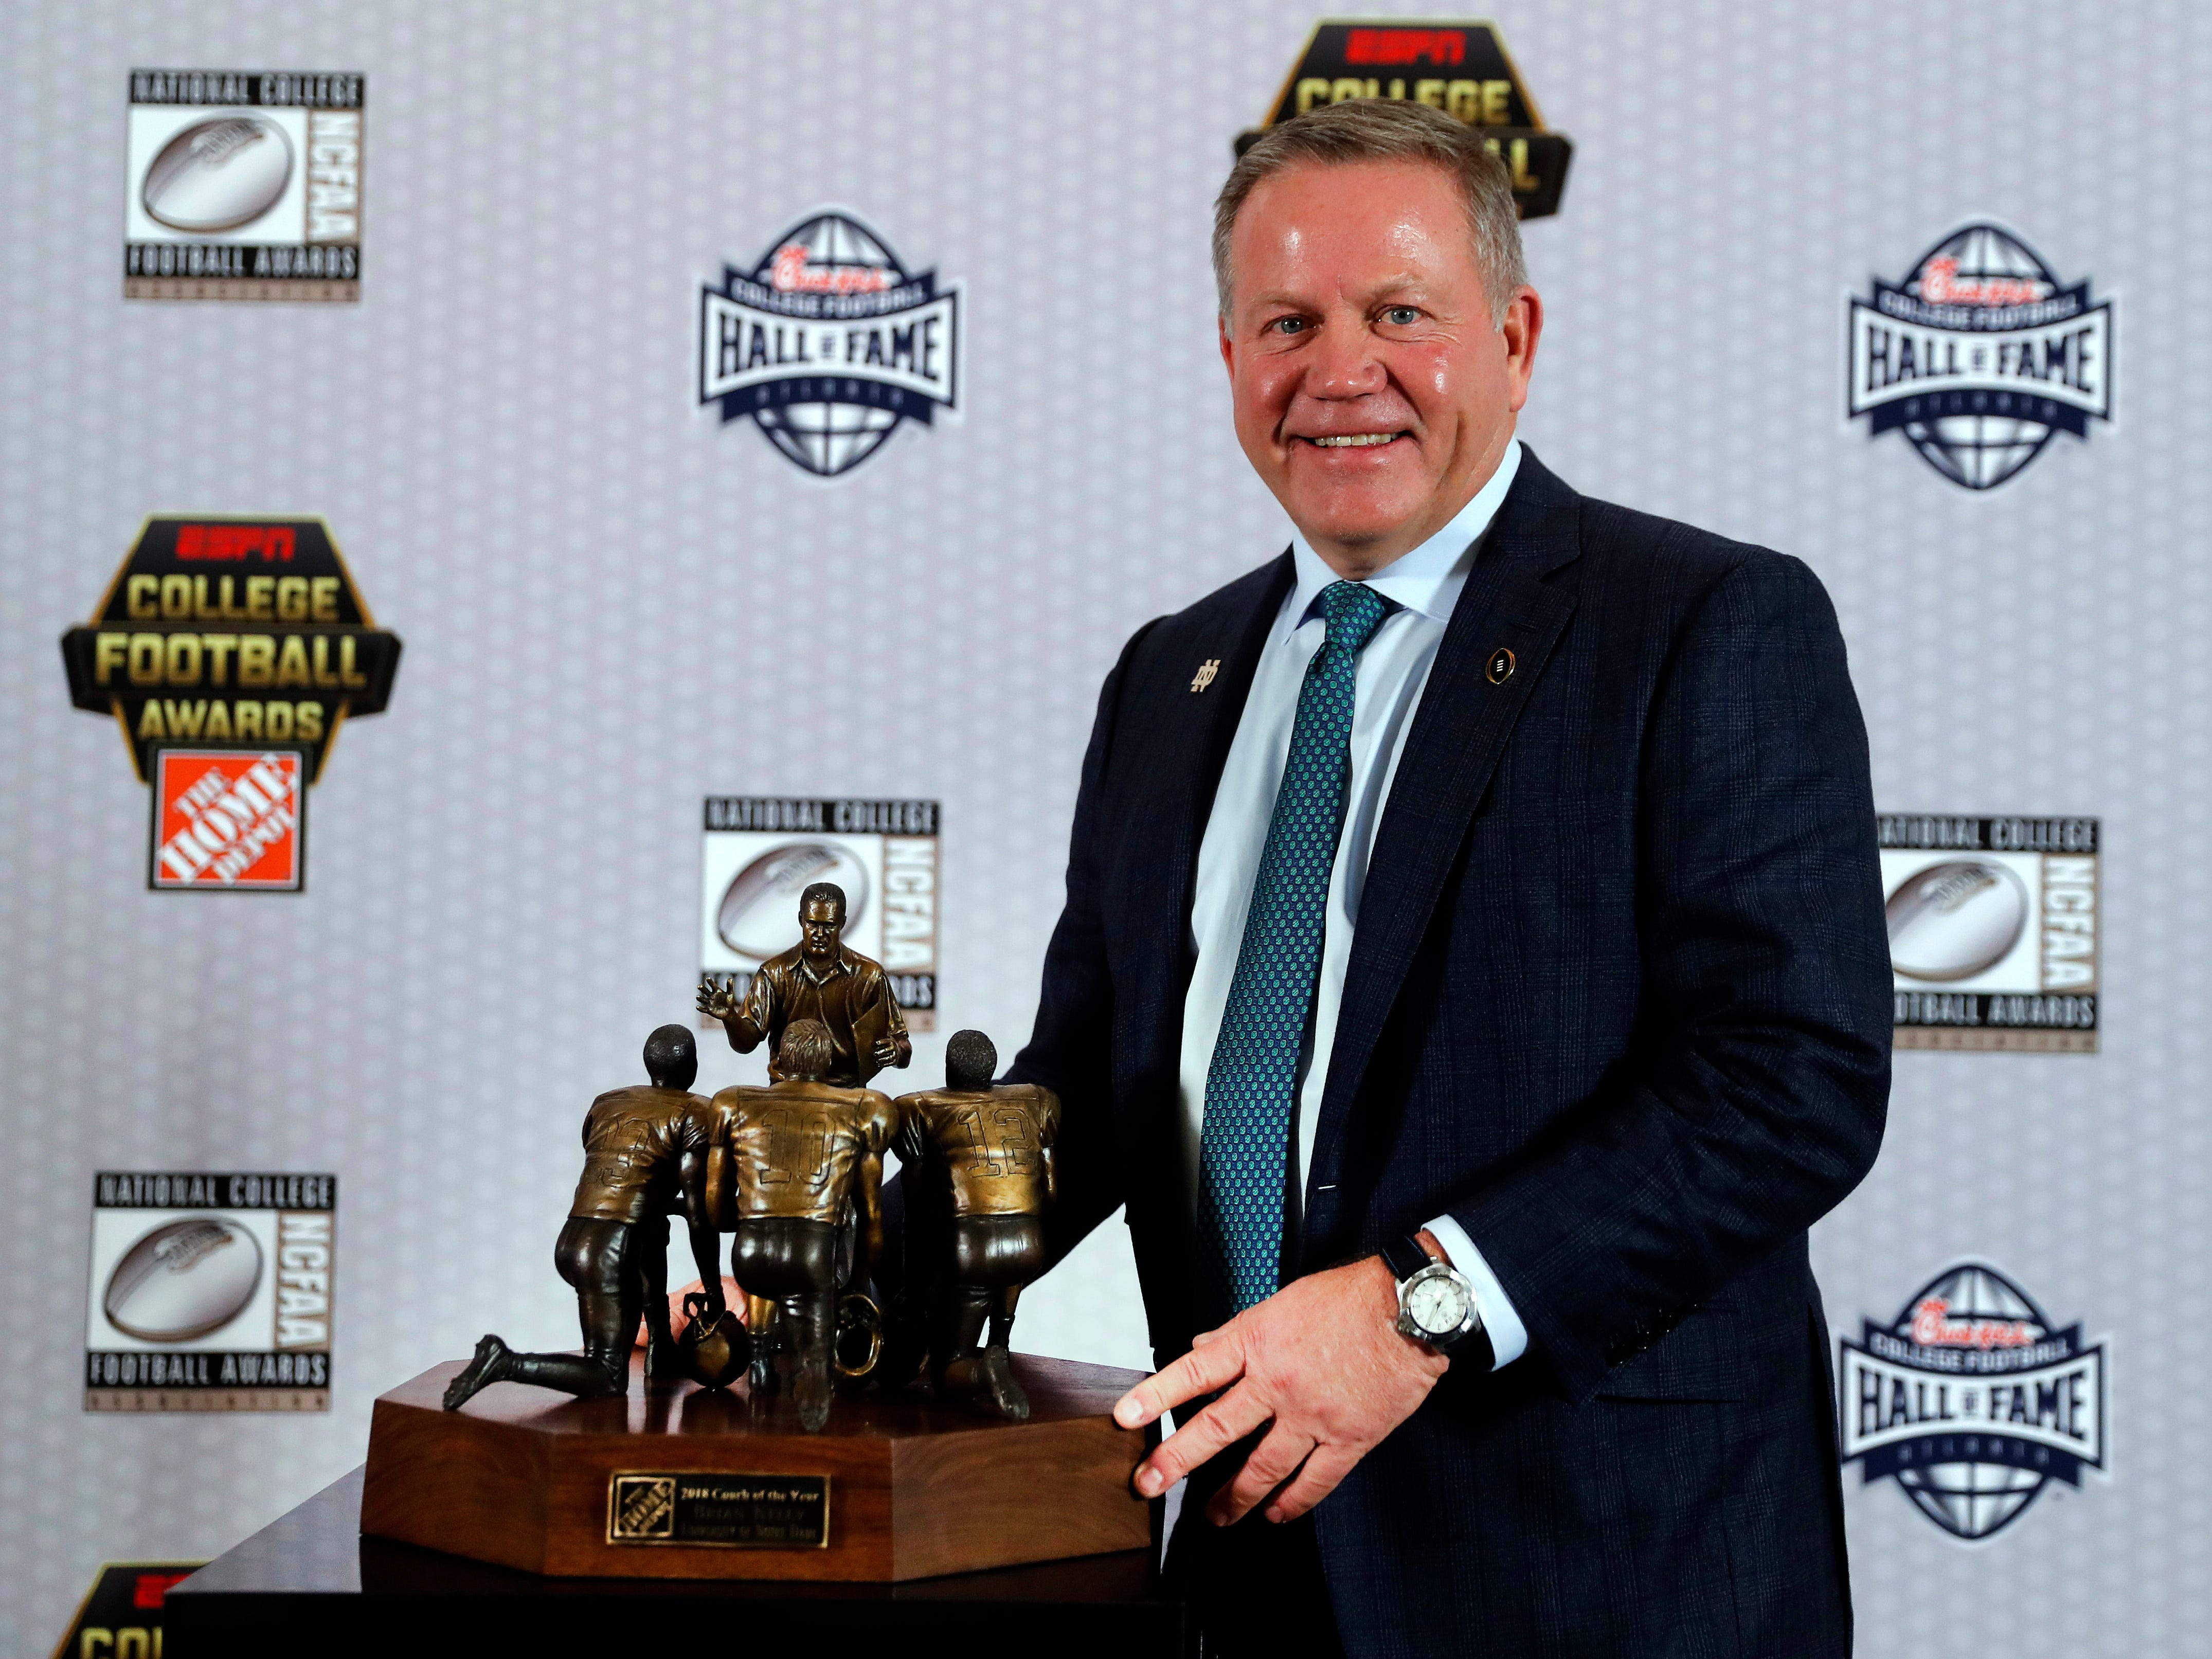 Notre Dame's Brian Kelly poses with the trophy after being named Coach of the Year.